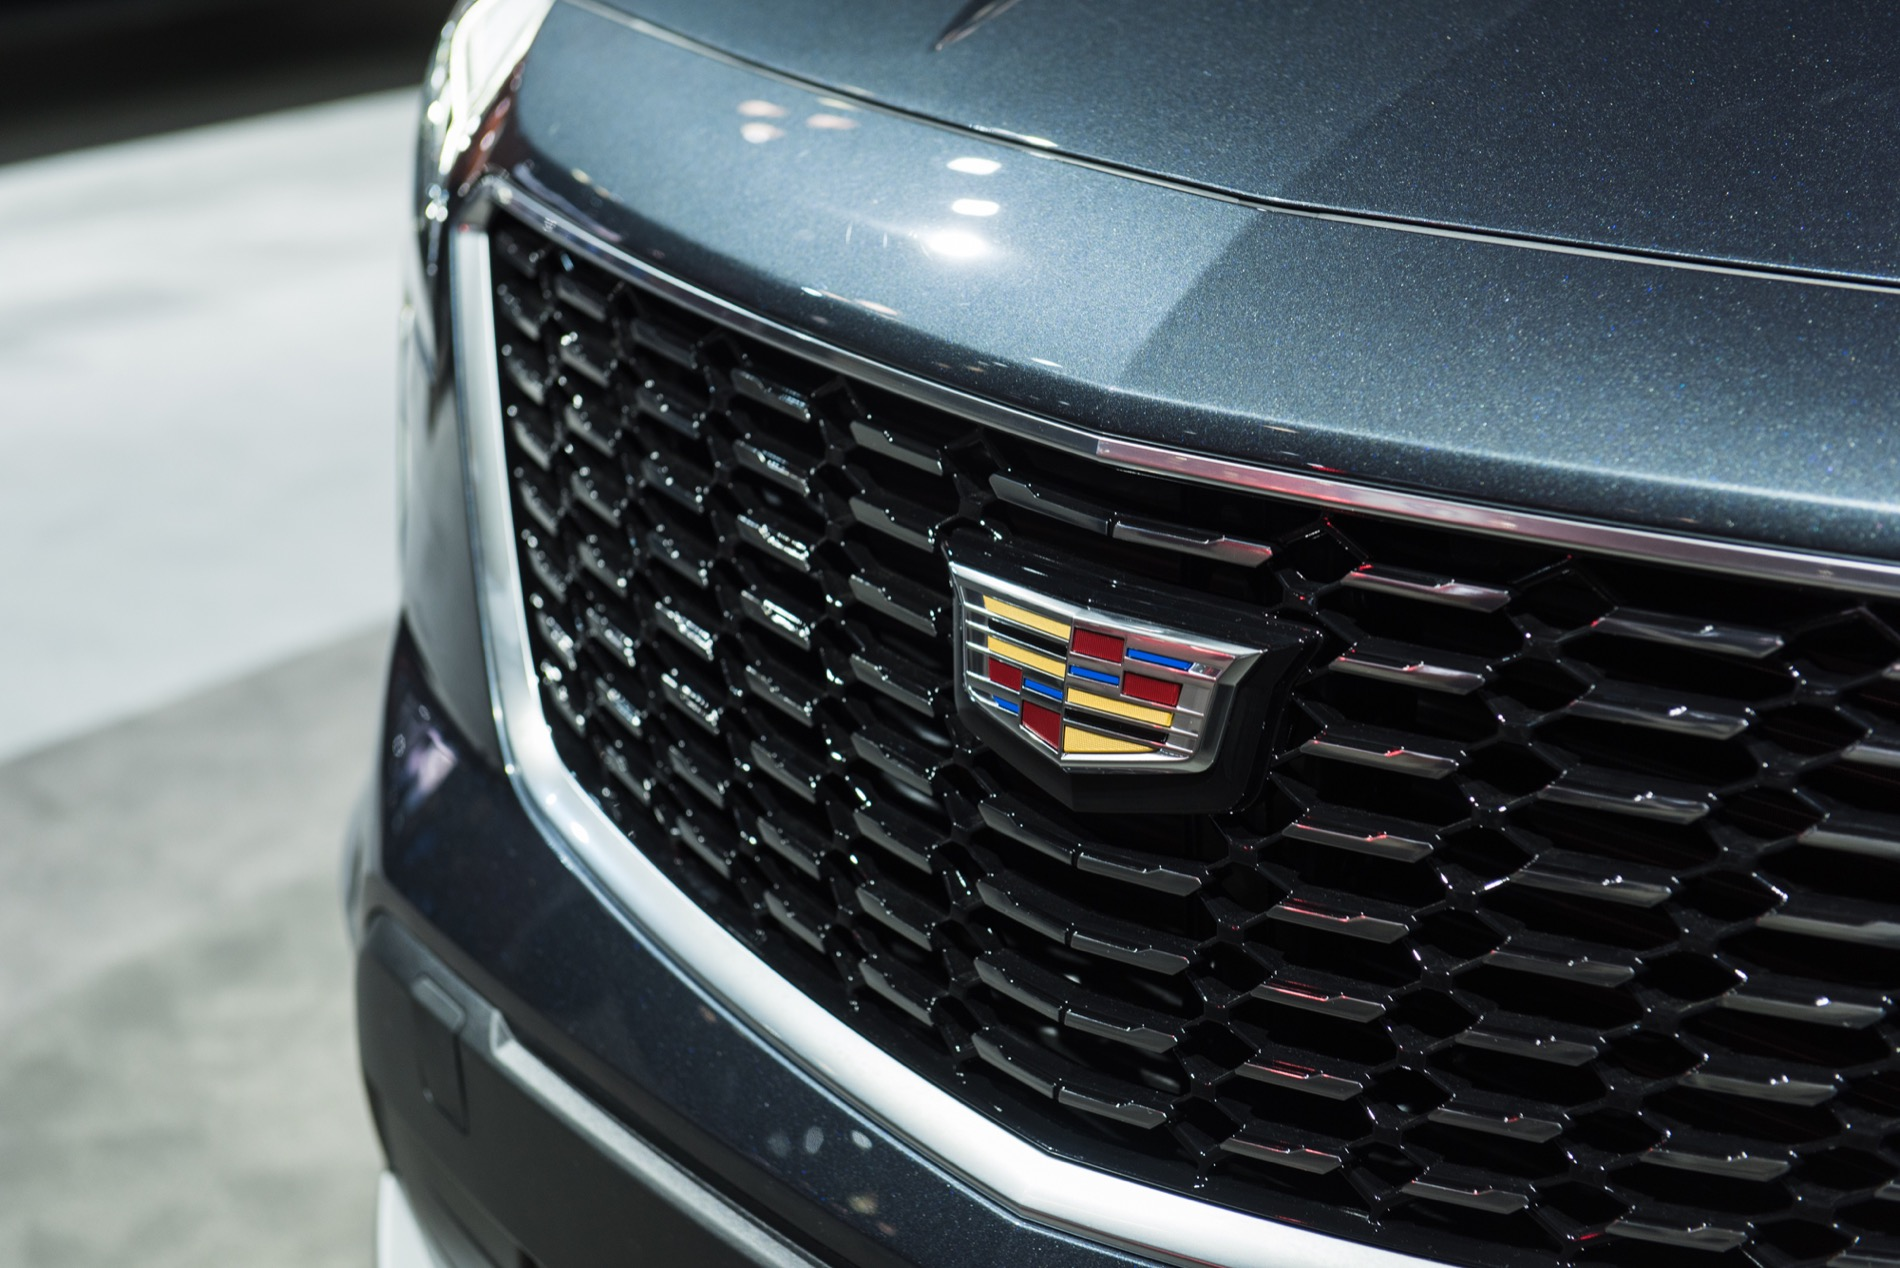 Complete 2019 Cadillac XT4 Details Surface Prior To Reveal